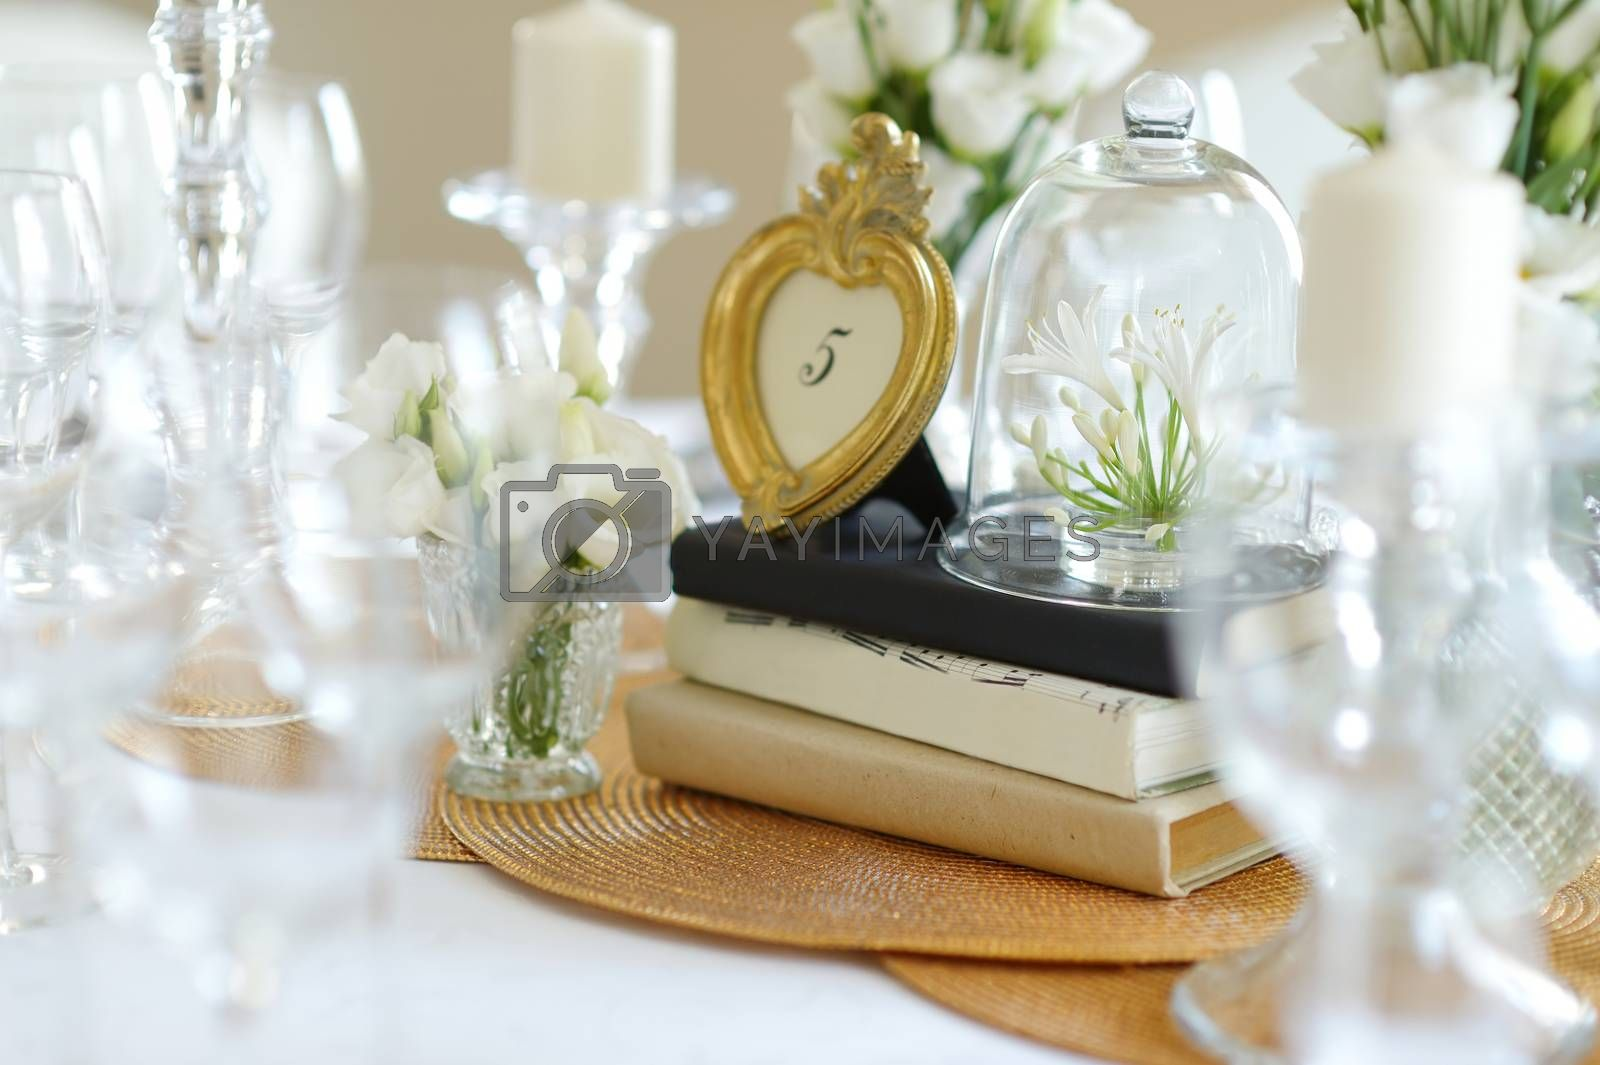 Royalty free image of Table set for an event party or wedding reception by maximkabb